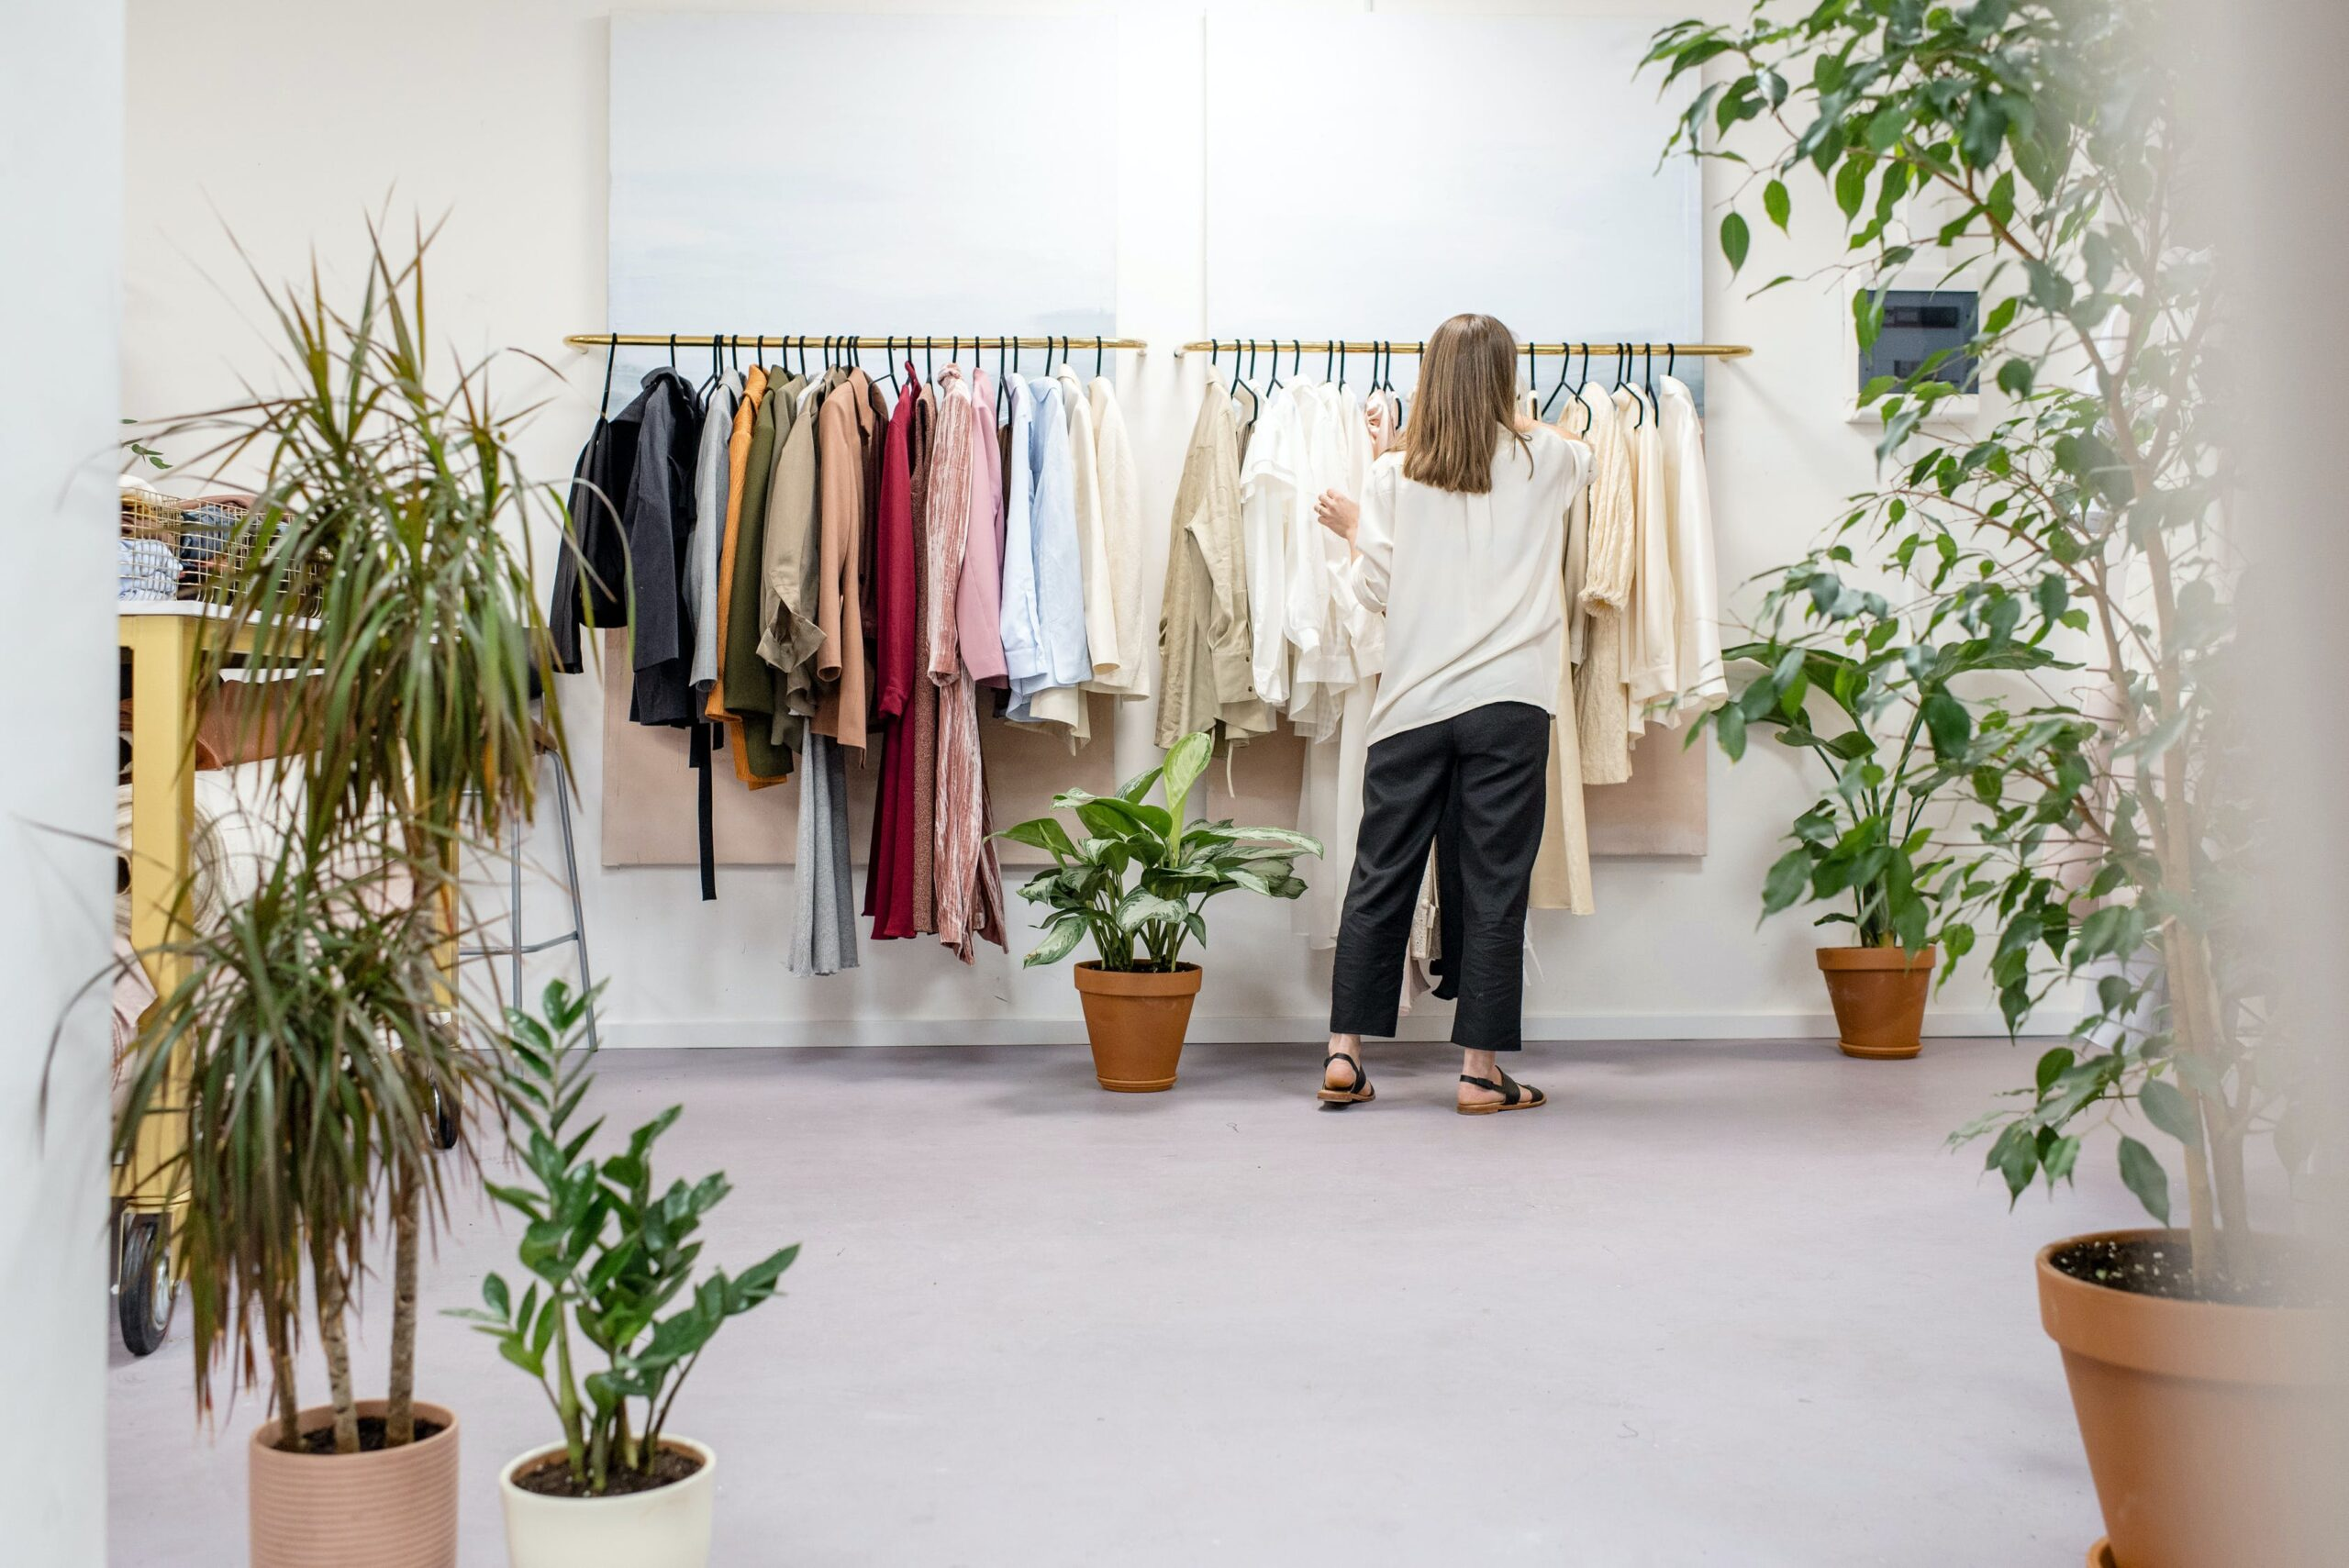 Design Your Retail Store